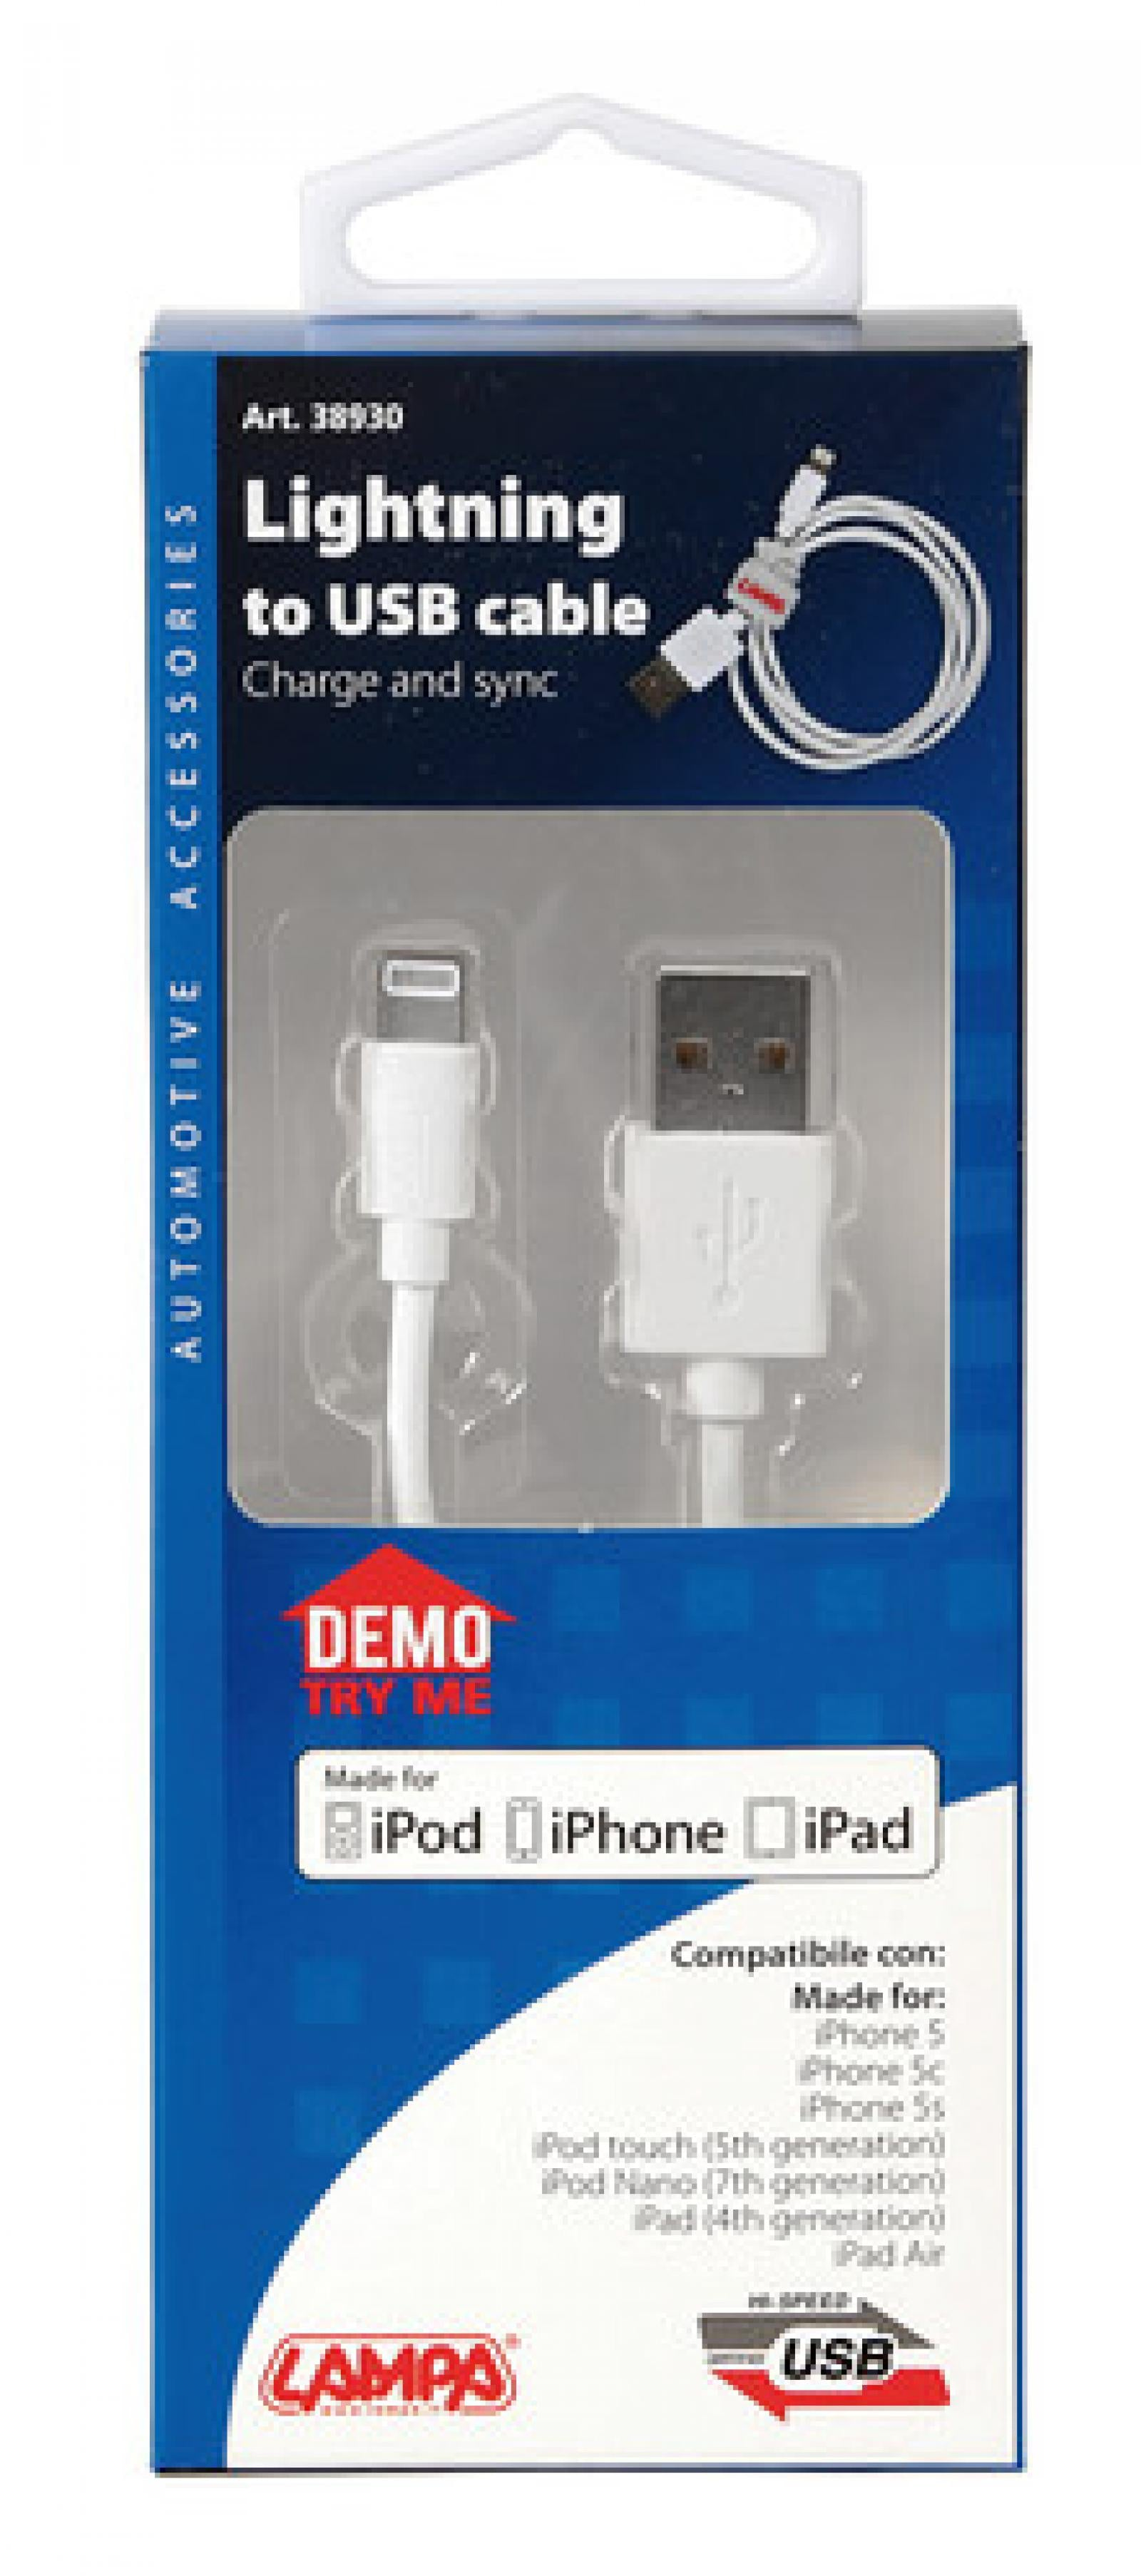 USB-Lightning, adatto per dispositivi Apple con 8 PIN - truck-shopping.it